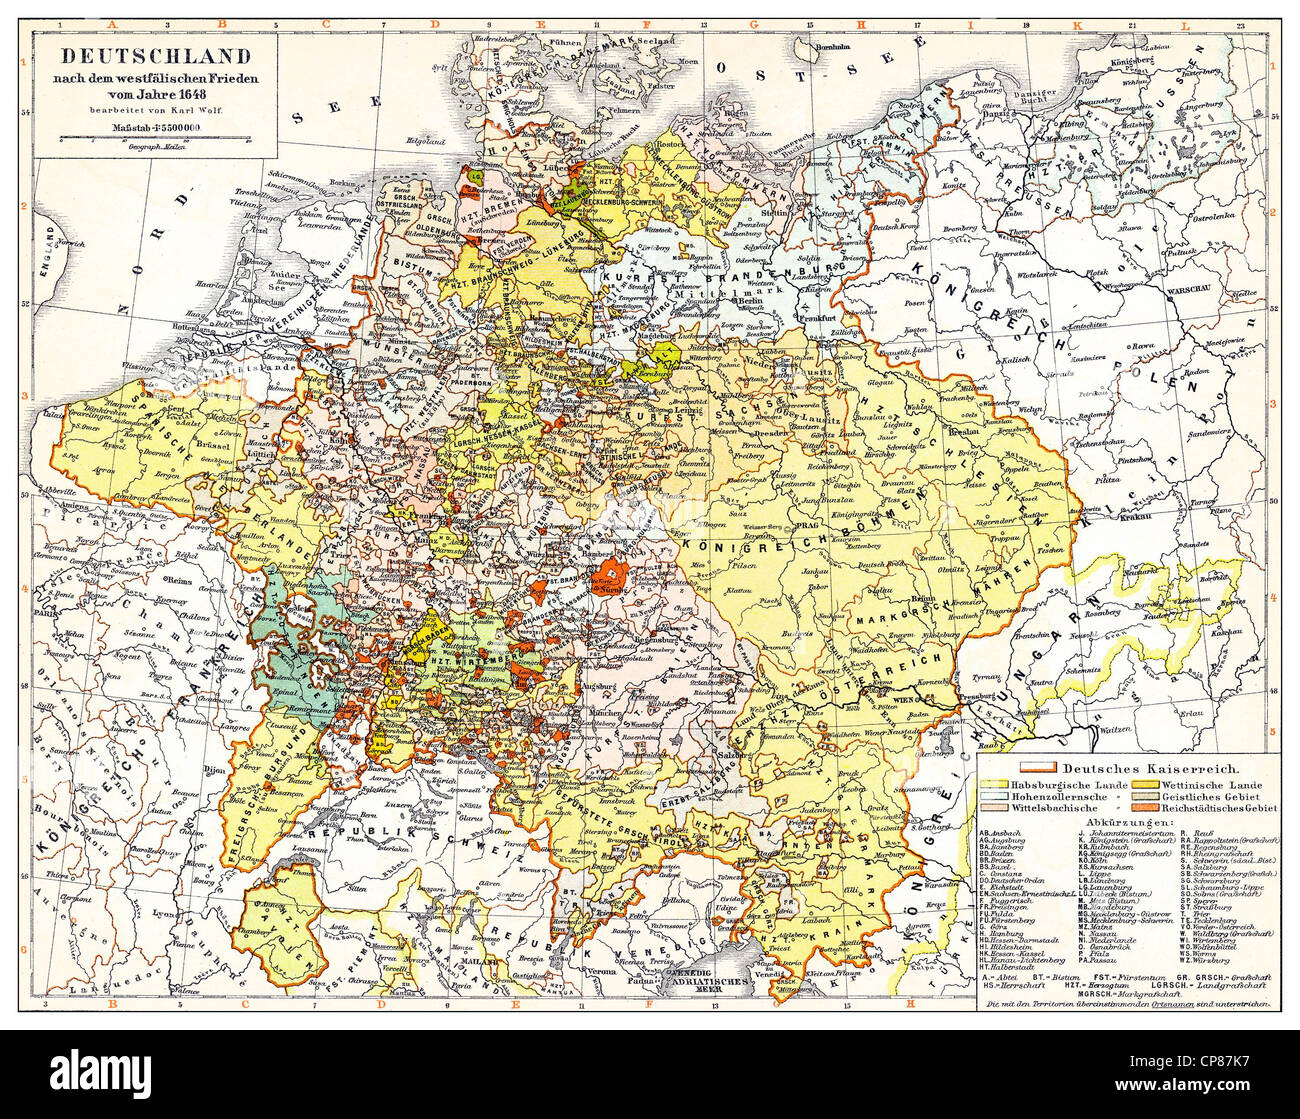 Historical Map Of Germany And Europe After The Peace Of Westphalia - Europe map 1648 westphalia